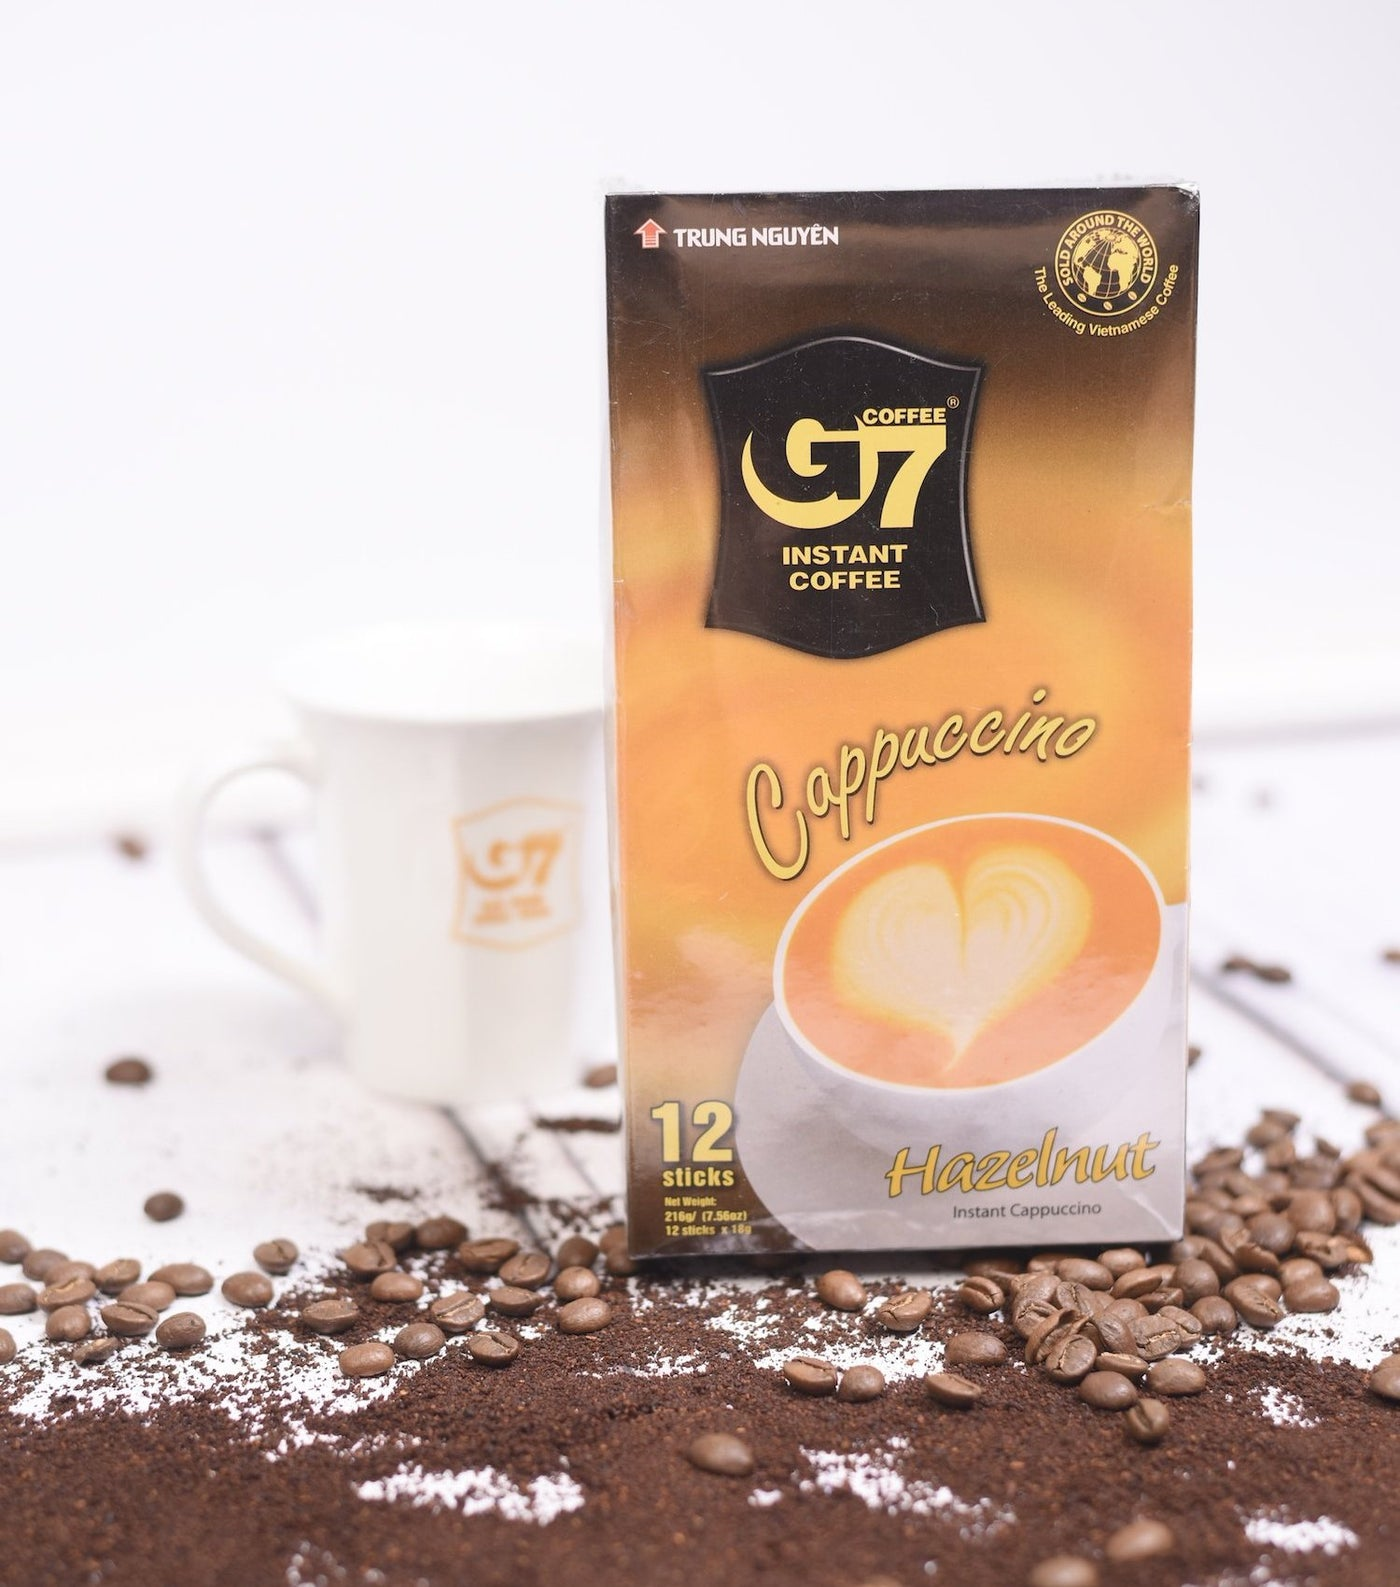 G7 Cappuccino hazelnut - 12 Sticks